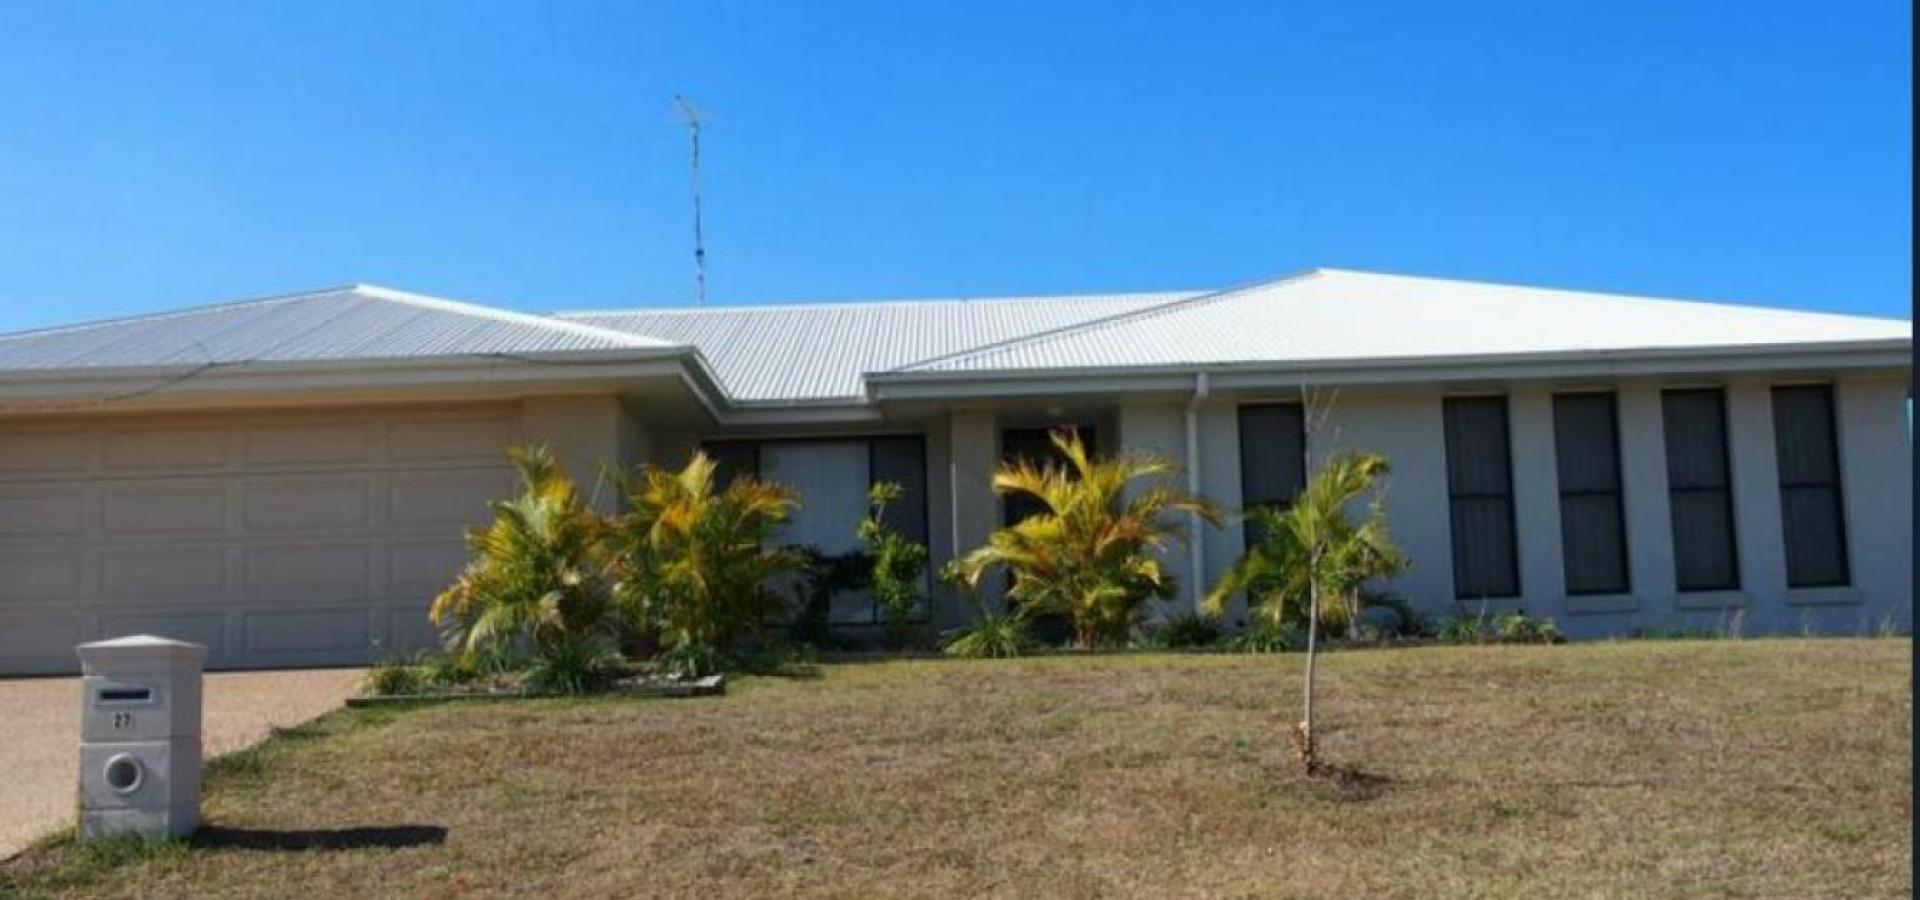 SEEKING HILLTOP SEA-CHANGE? NEED 4 BEDROOMS? THIS IS FOR YOU!